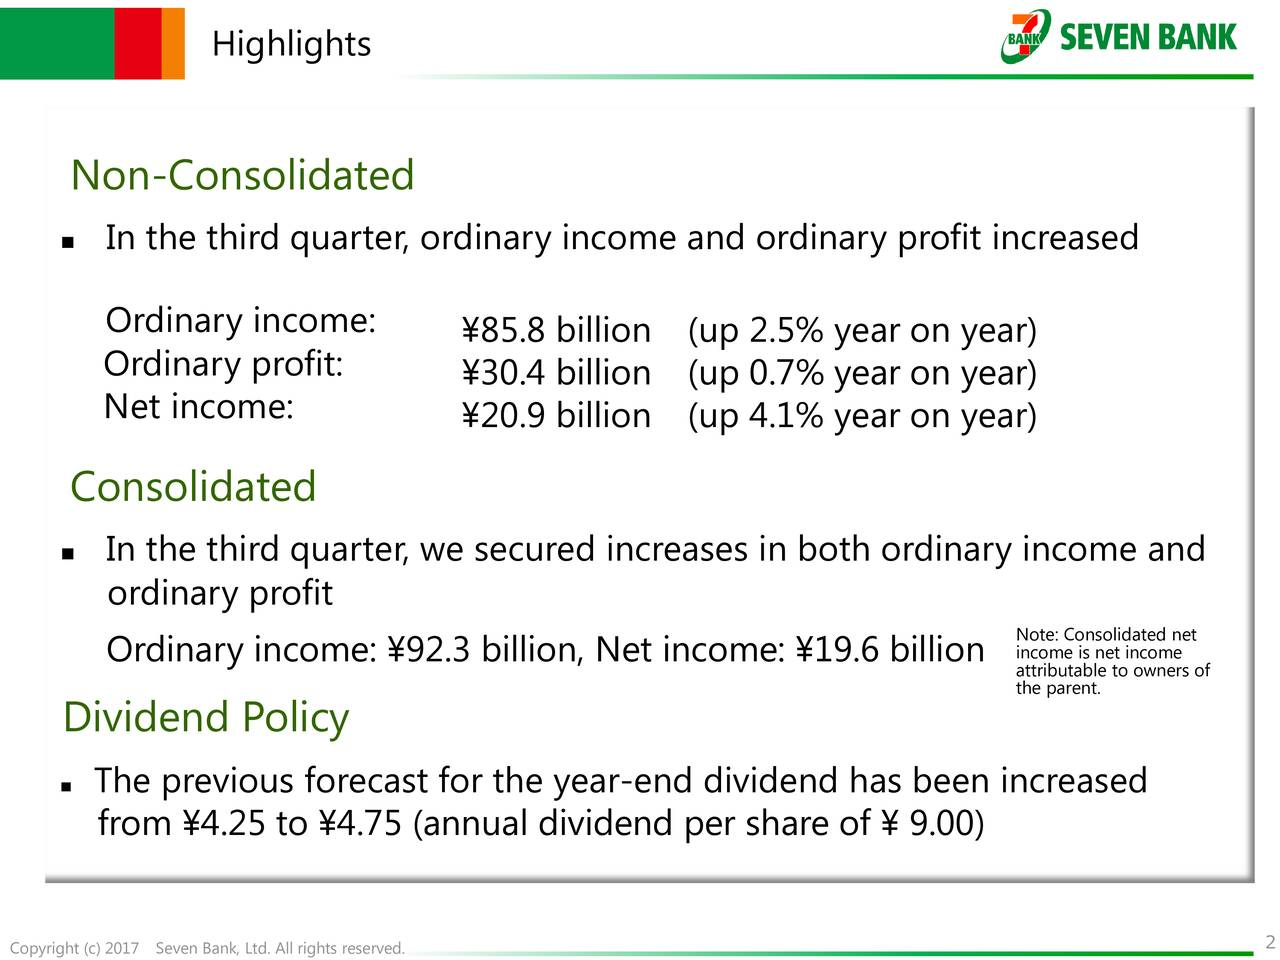 Non-Consolidated In the third quarter, ordinary income and ordinary profit increased Ordinary income: 85.8 billion (up 2.5% year on year) Ordinary profit: 30.4 billion (up 0.7% year on year) Net income: 20.9 billion (up 4.1% year on year) Consolidated In the third quarter, we secured increases in both ordinary income and ordinary profit Note: Consolidated net Ordinary income: 92.3 billion, Net income: 19.6 billion income is net income the parent.e to owners of Dividend Policy The previous forecast for the year-end dividend has been increased from 4.25 to 4.75 (annual dividend per share of  9.00)